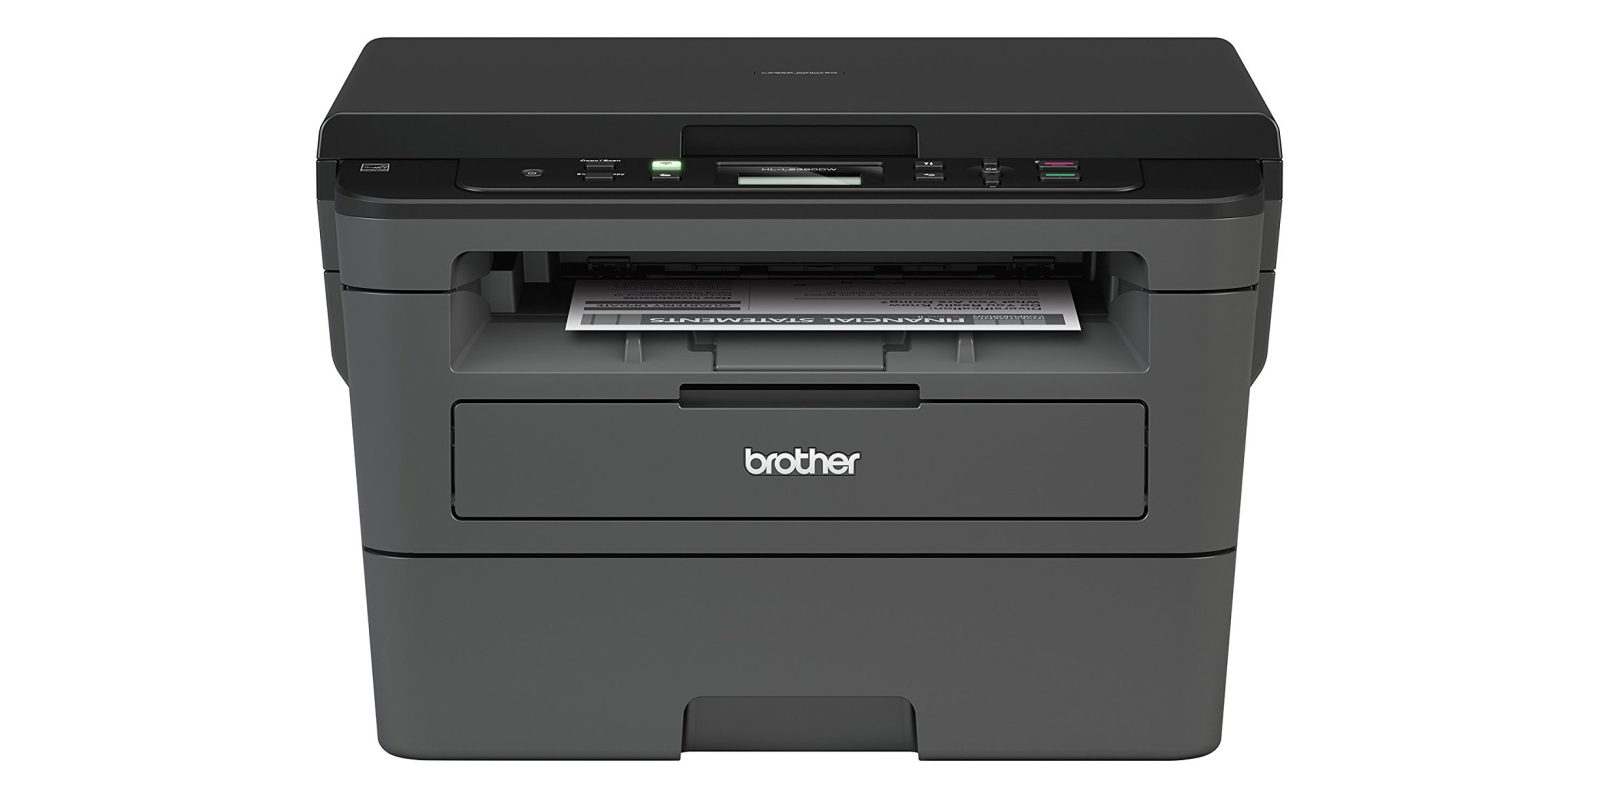 Grab the best price ever on Brother's AiO AirPrint Laser Printer for $70